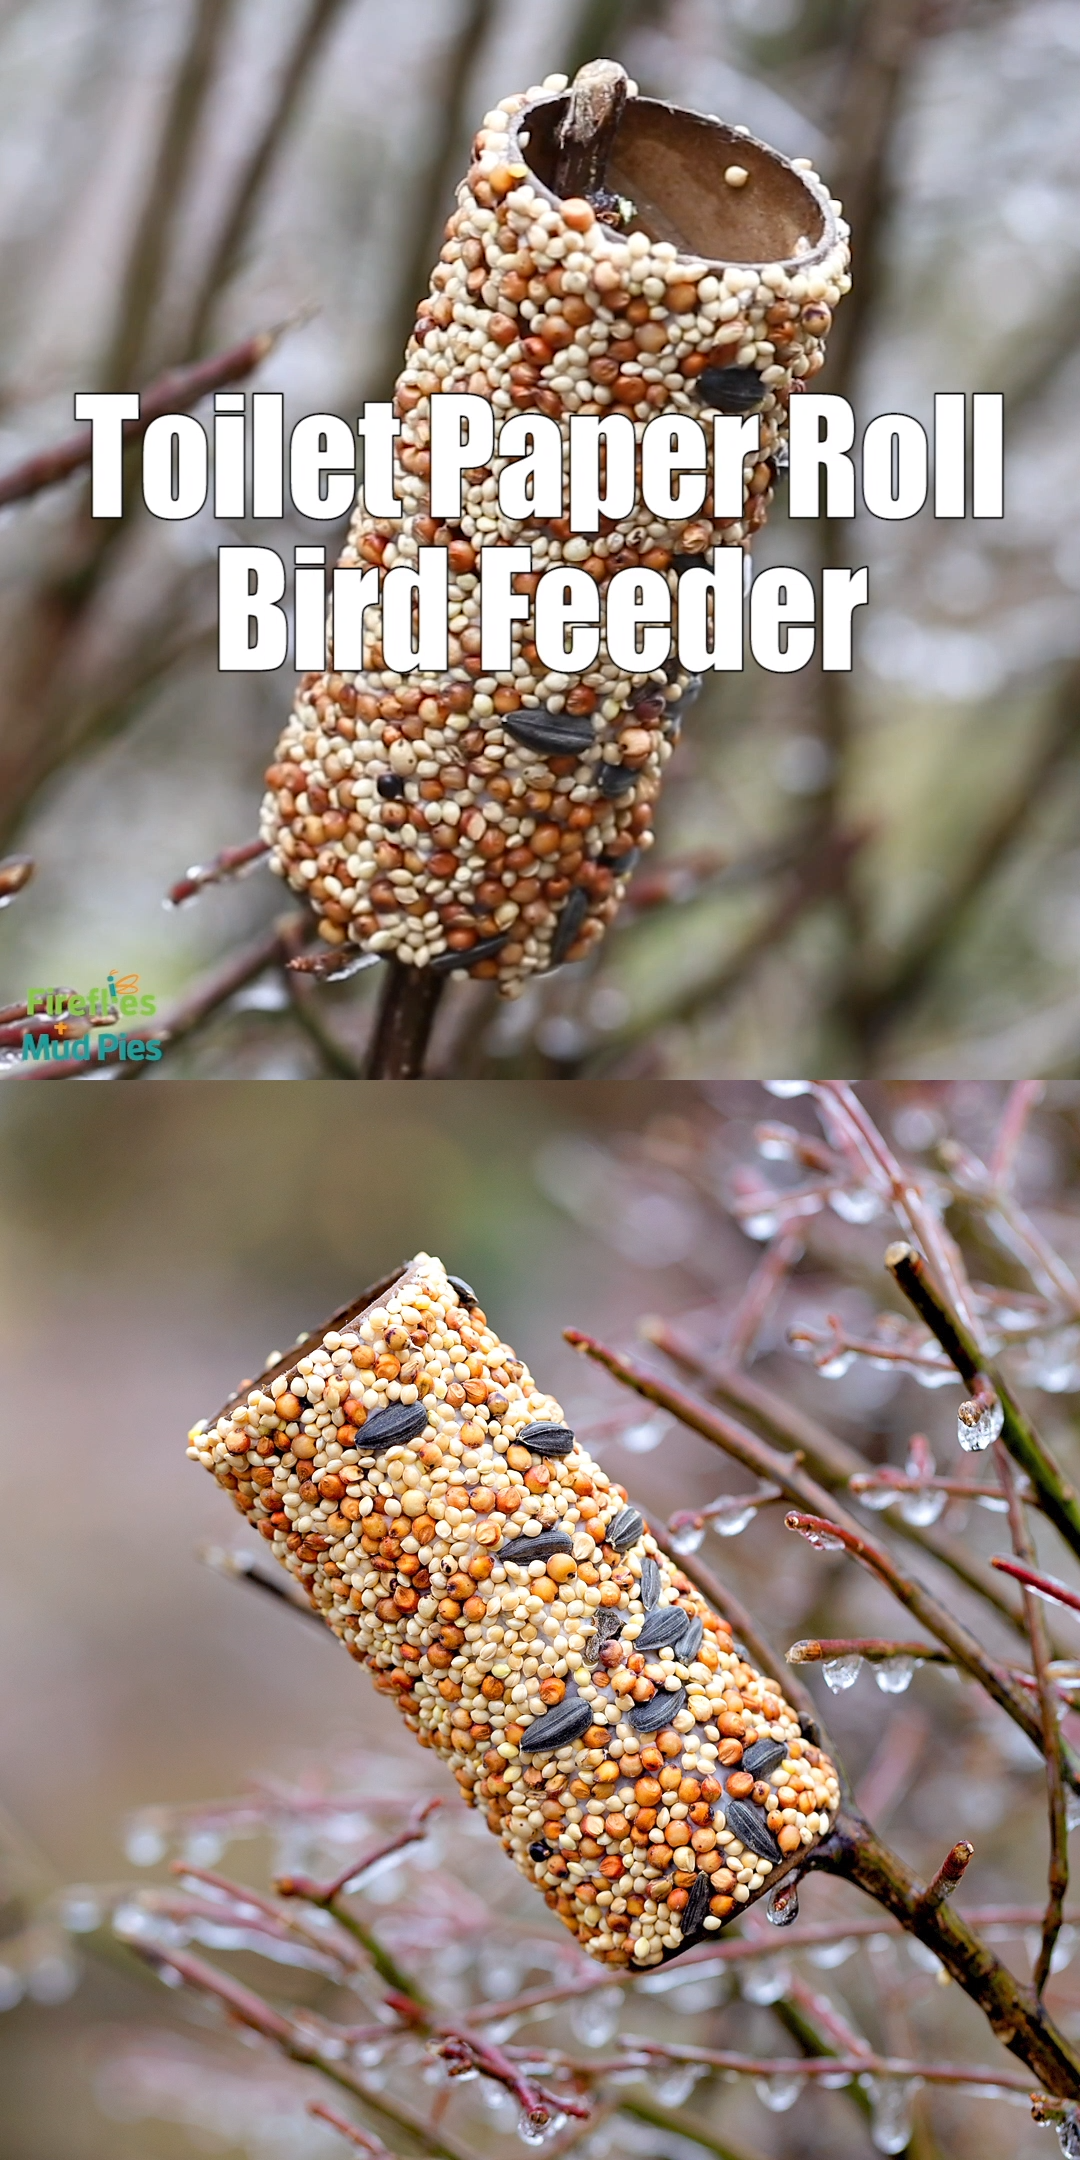 Toilet Paper Roll Bird Feeder | Fireflies and Mud Pies